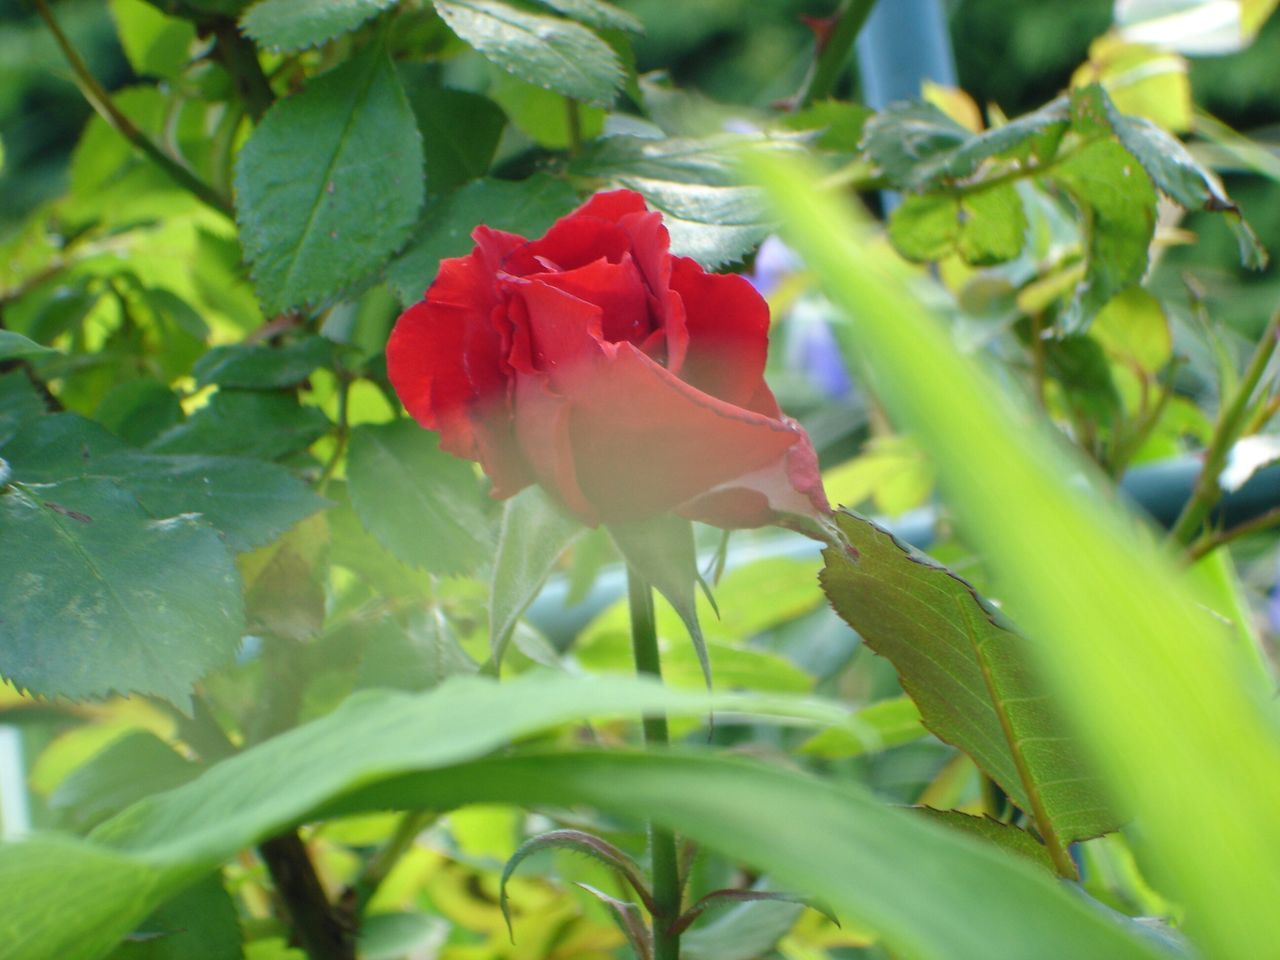 Red Rose Blooming In Lawn